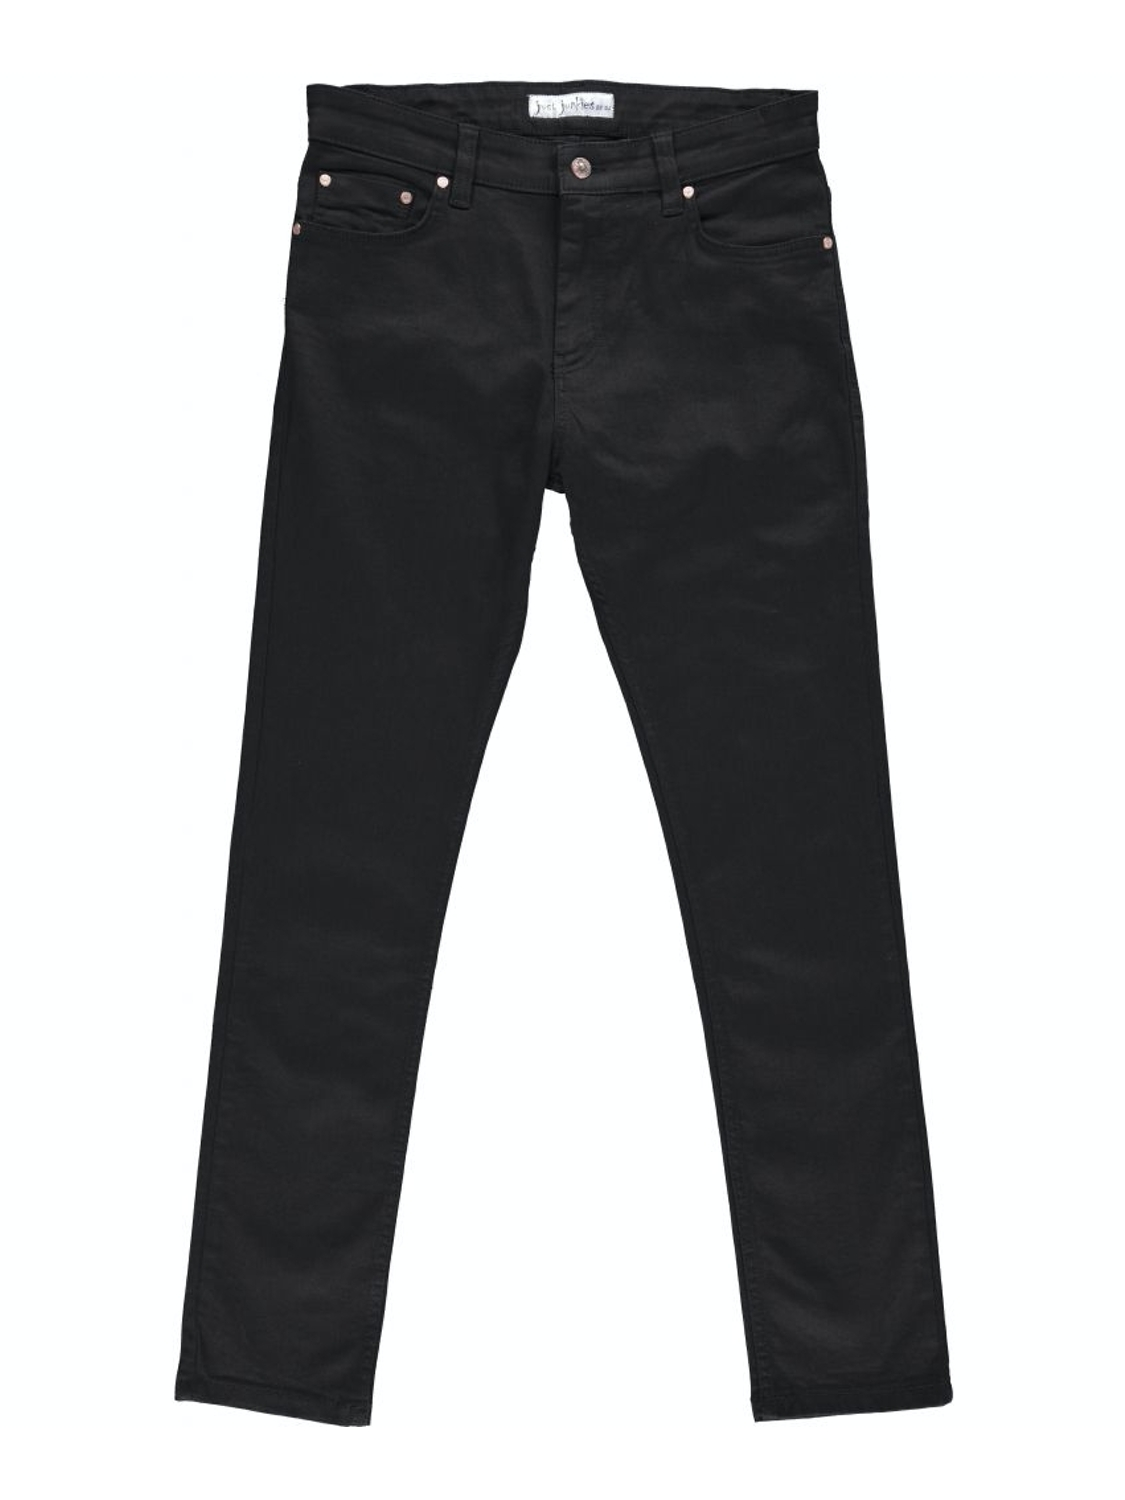 Just Junkies Sicko Black Jeans | GATE 36 Hobro